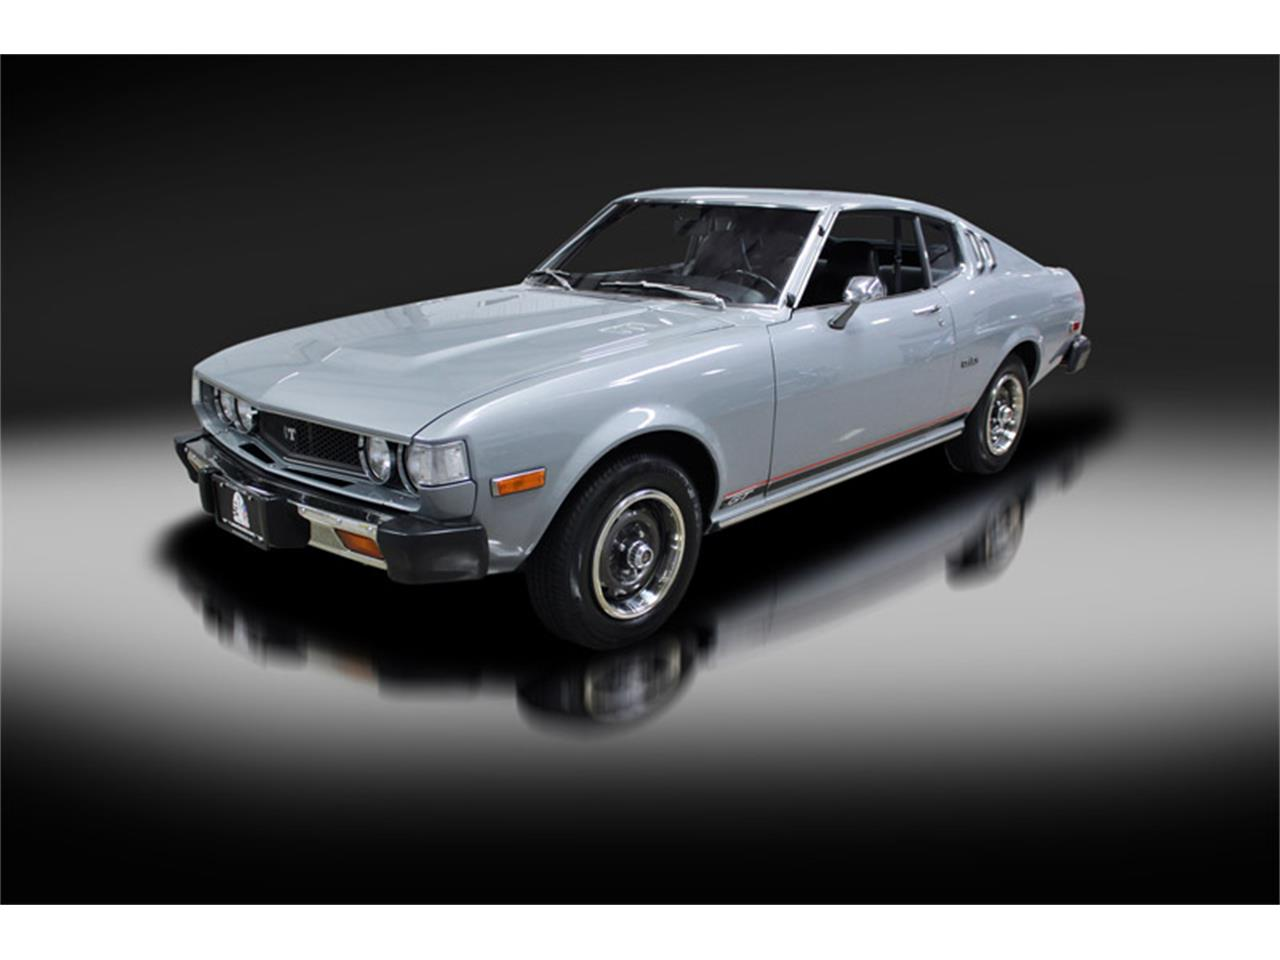 For Sale: 1977 Toyota Celica in Seekonk, Massachusetts